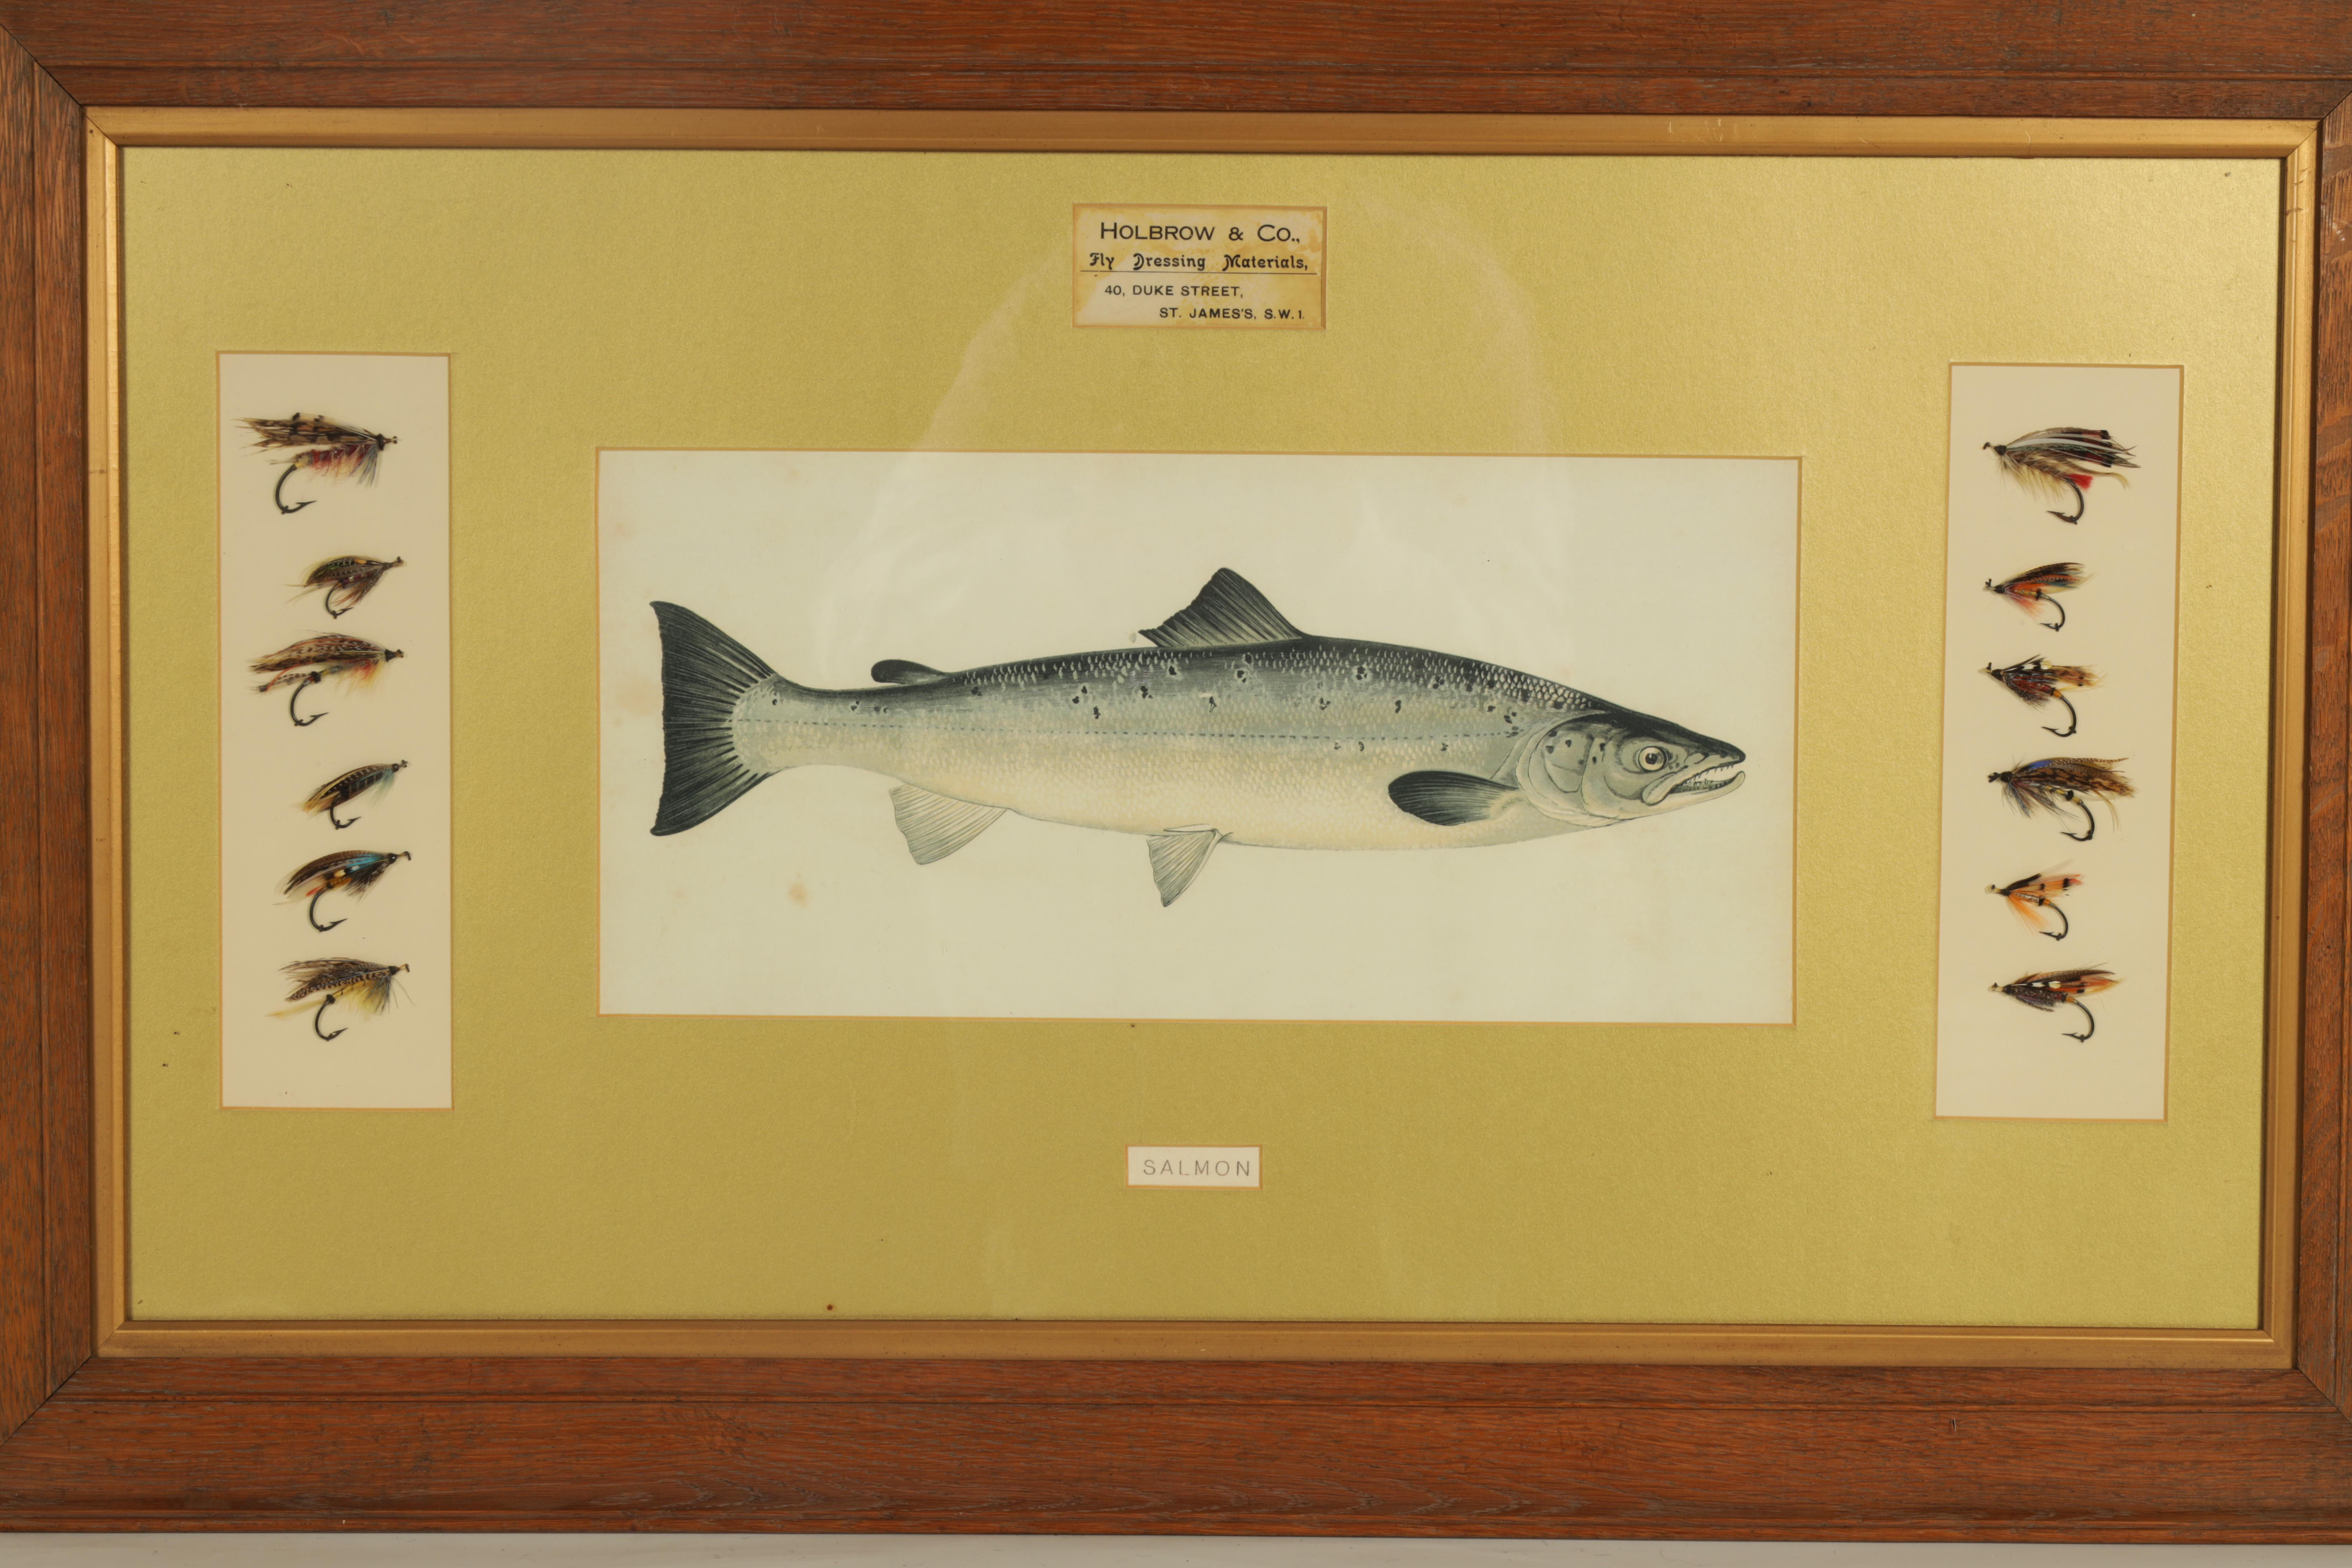 AN EDWARDIAN FLY FISHING SHOP DISPLAY FOR SALMON FLIES from Holbrook & Co. Fly Dressing Materials, - Image 2 of 3